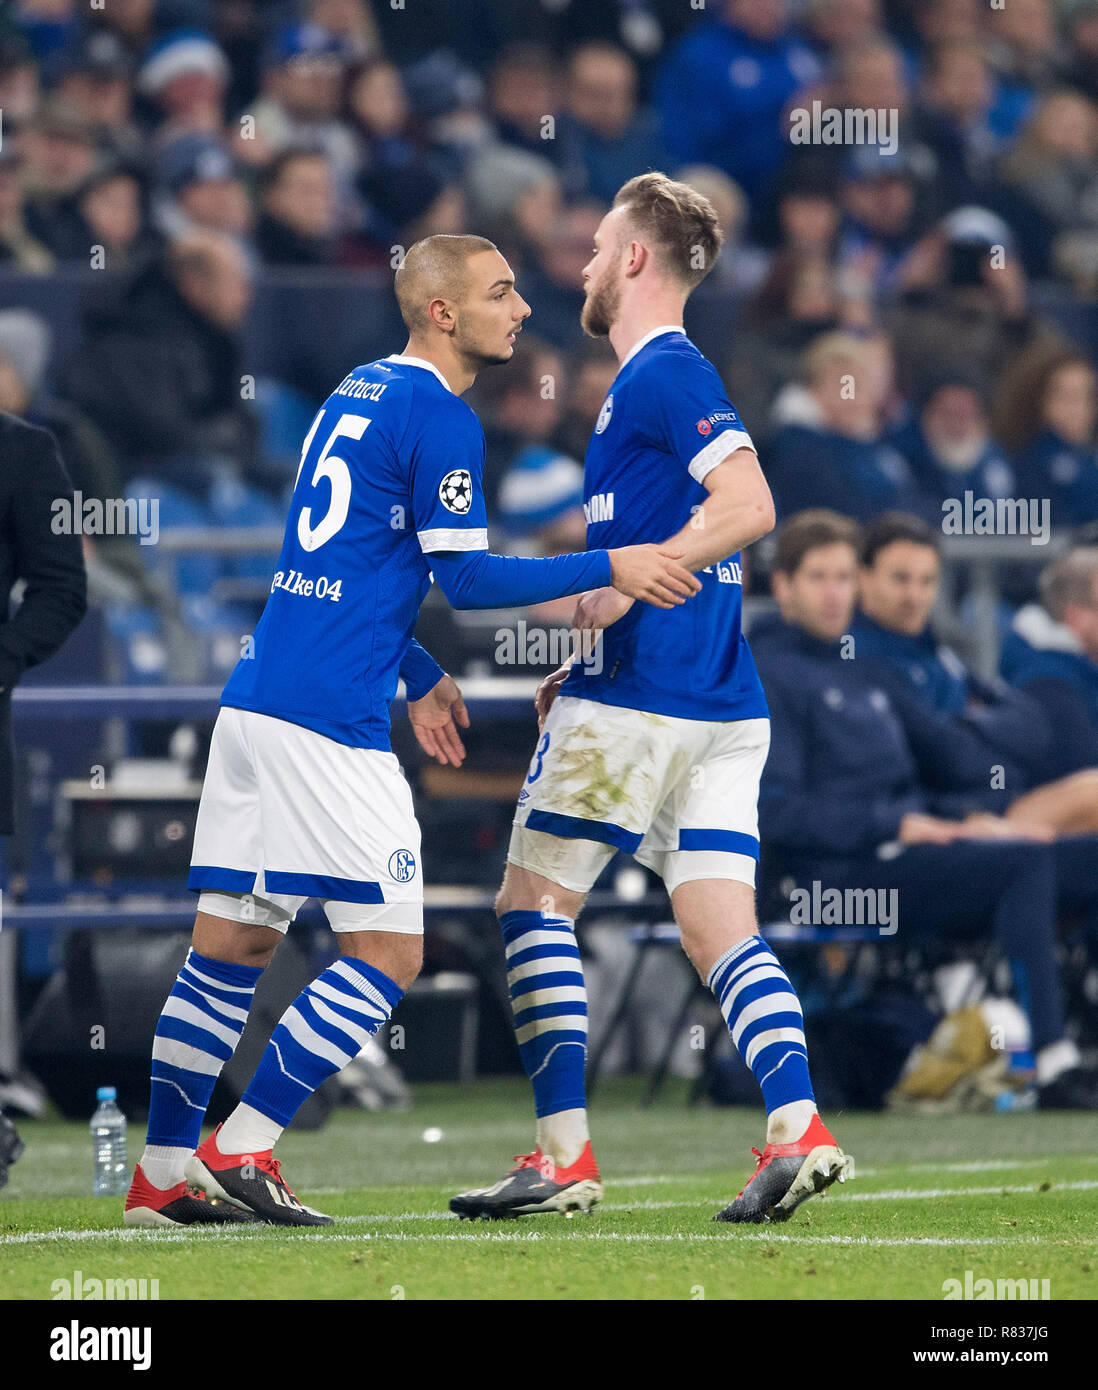 Gelsenkirchen, Deutschland. 11th Dec, 2018. Substitutions Ahmed KUTUCU (GE) will score for Cedric TEUCHERT (GE), Substitution, Football Champions League, Preliminary Round, 6th matchday, FC Schalke 04 (GE) - Lokomotiv Moscow (Lok), on 11.12.2018 in Gelsenkirchen/Germany. ## DFL regulations prohibit any use of photographs as image sequences and/or quasi-video ##   usage worldwide Credit: dpa/Alamy Live News - Stock Image